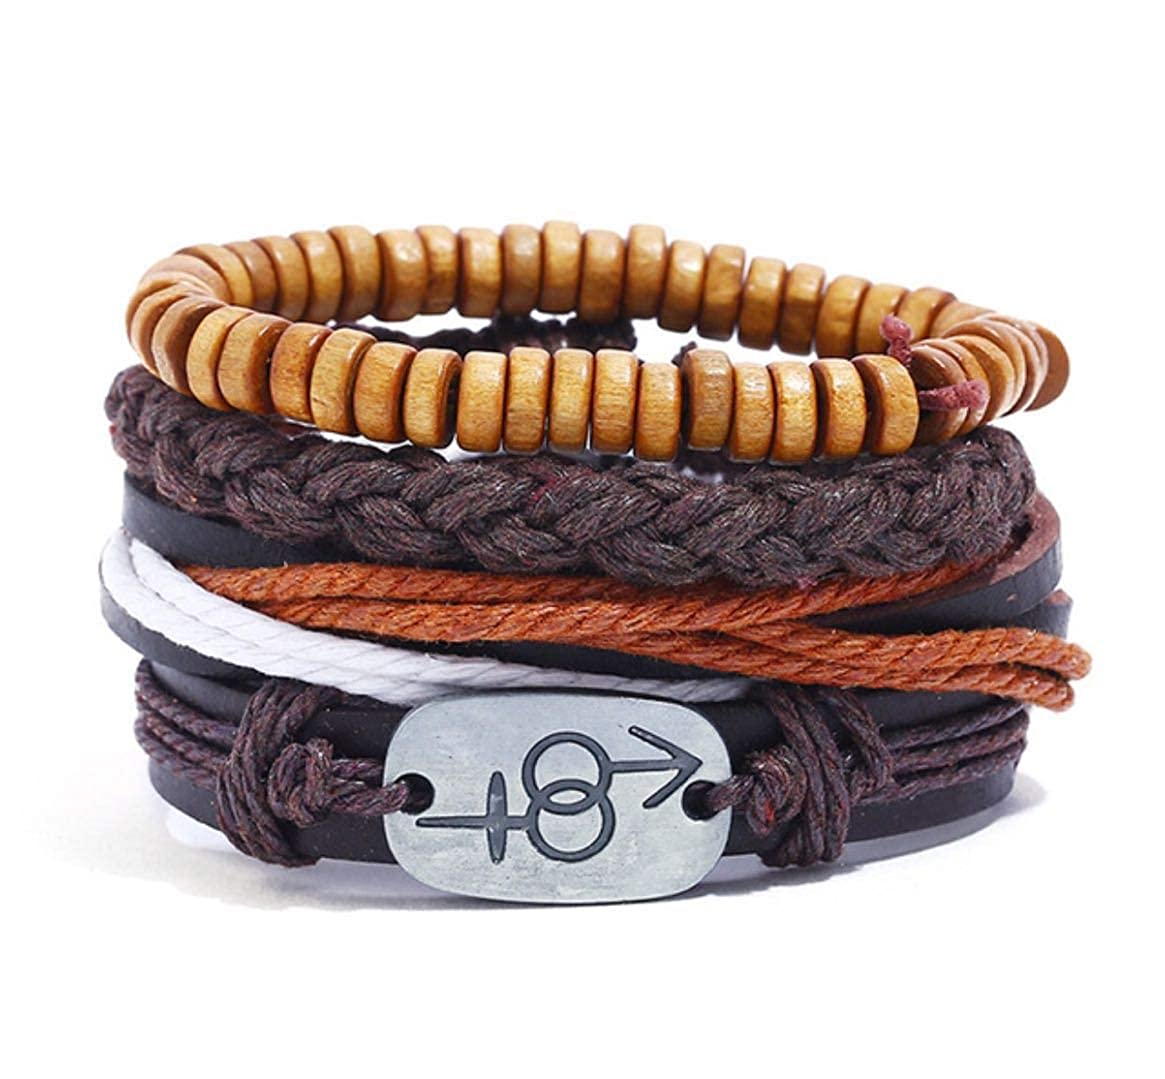 Adjustable Cuff Wristbands Men and Women Black WeRock Mix 4 Wrap Leather Bracelets Wood Beads